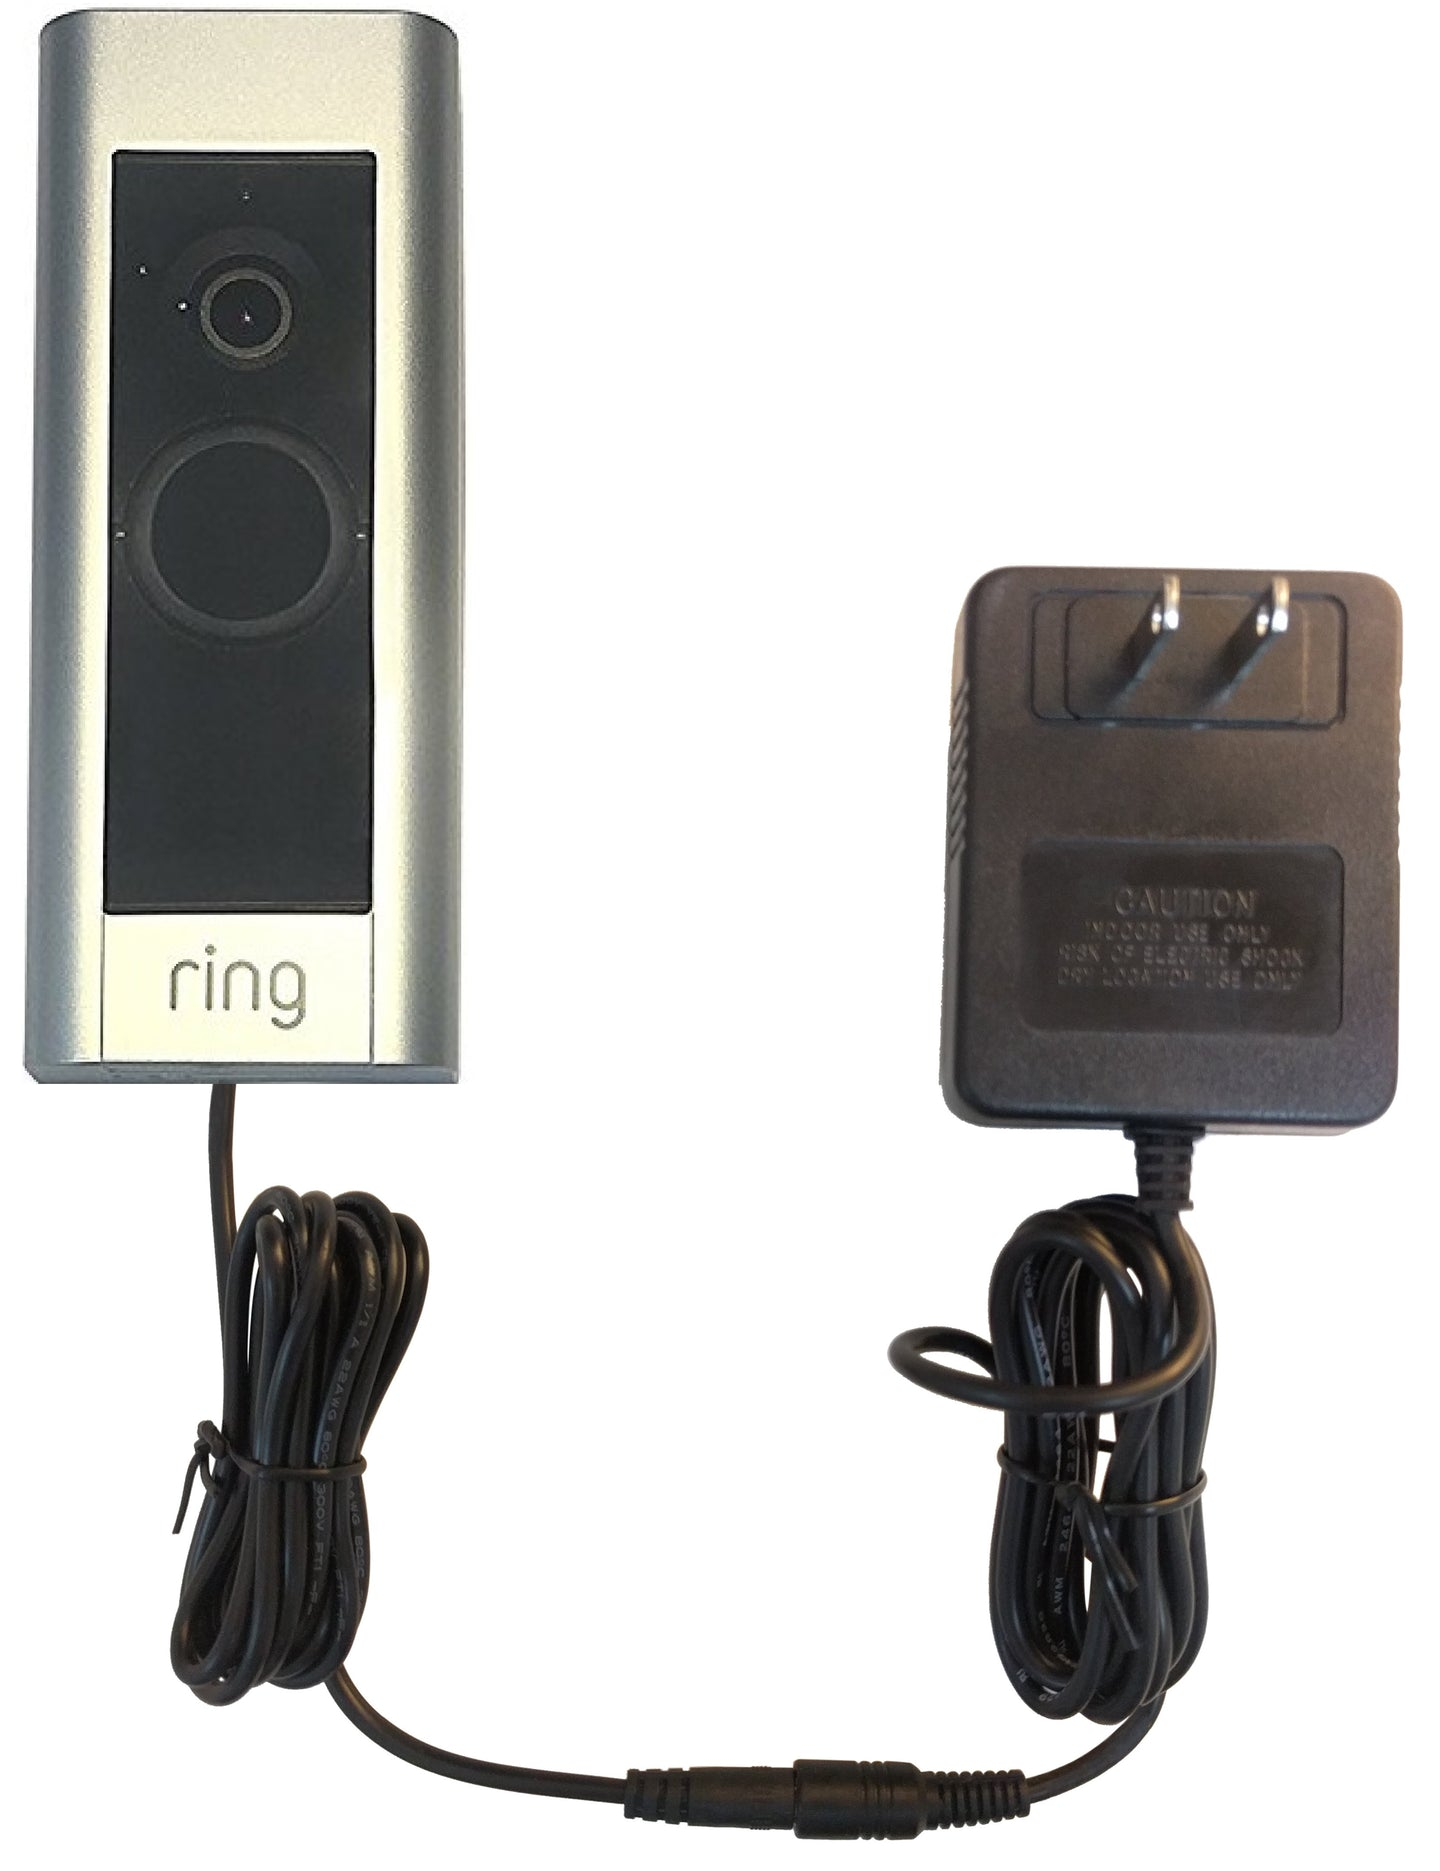 OhmKat Video Doorbell Power Supply - Compatible with Ring Video Doorbell PRO